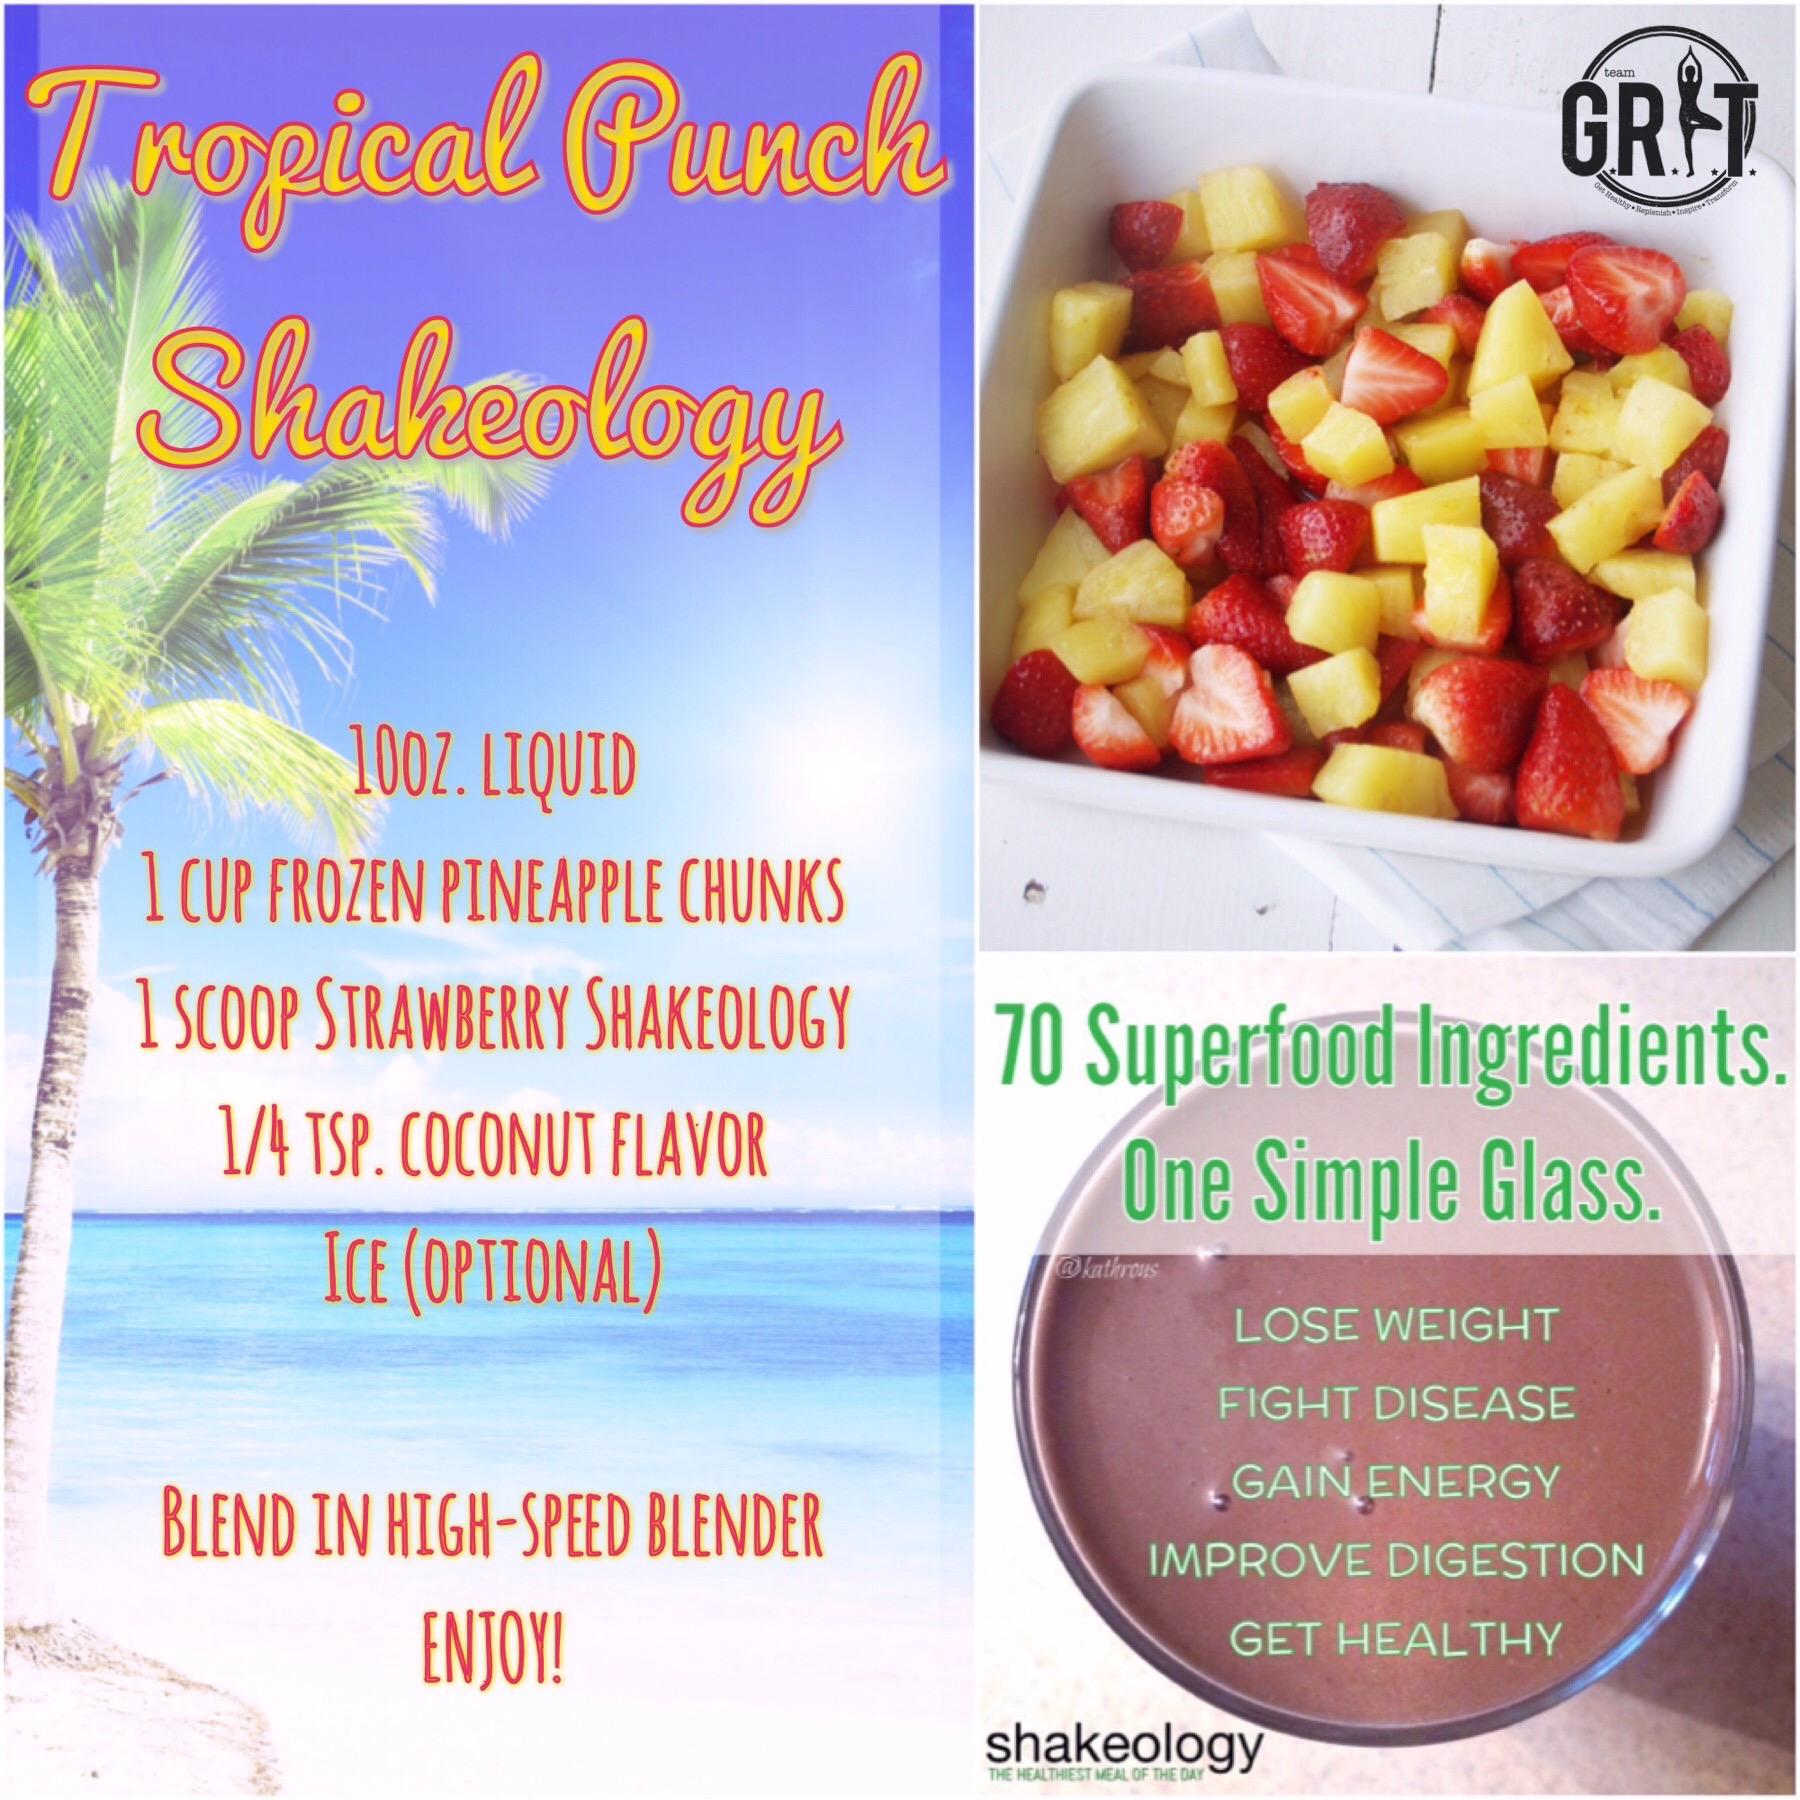 Tropical Punch Shakeology